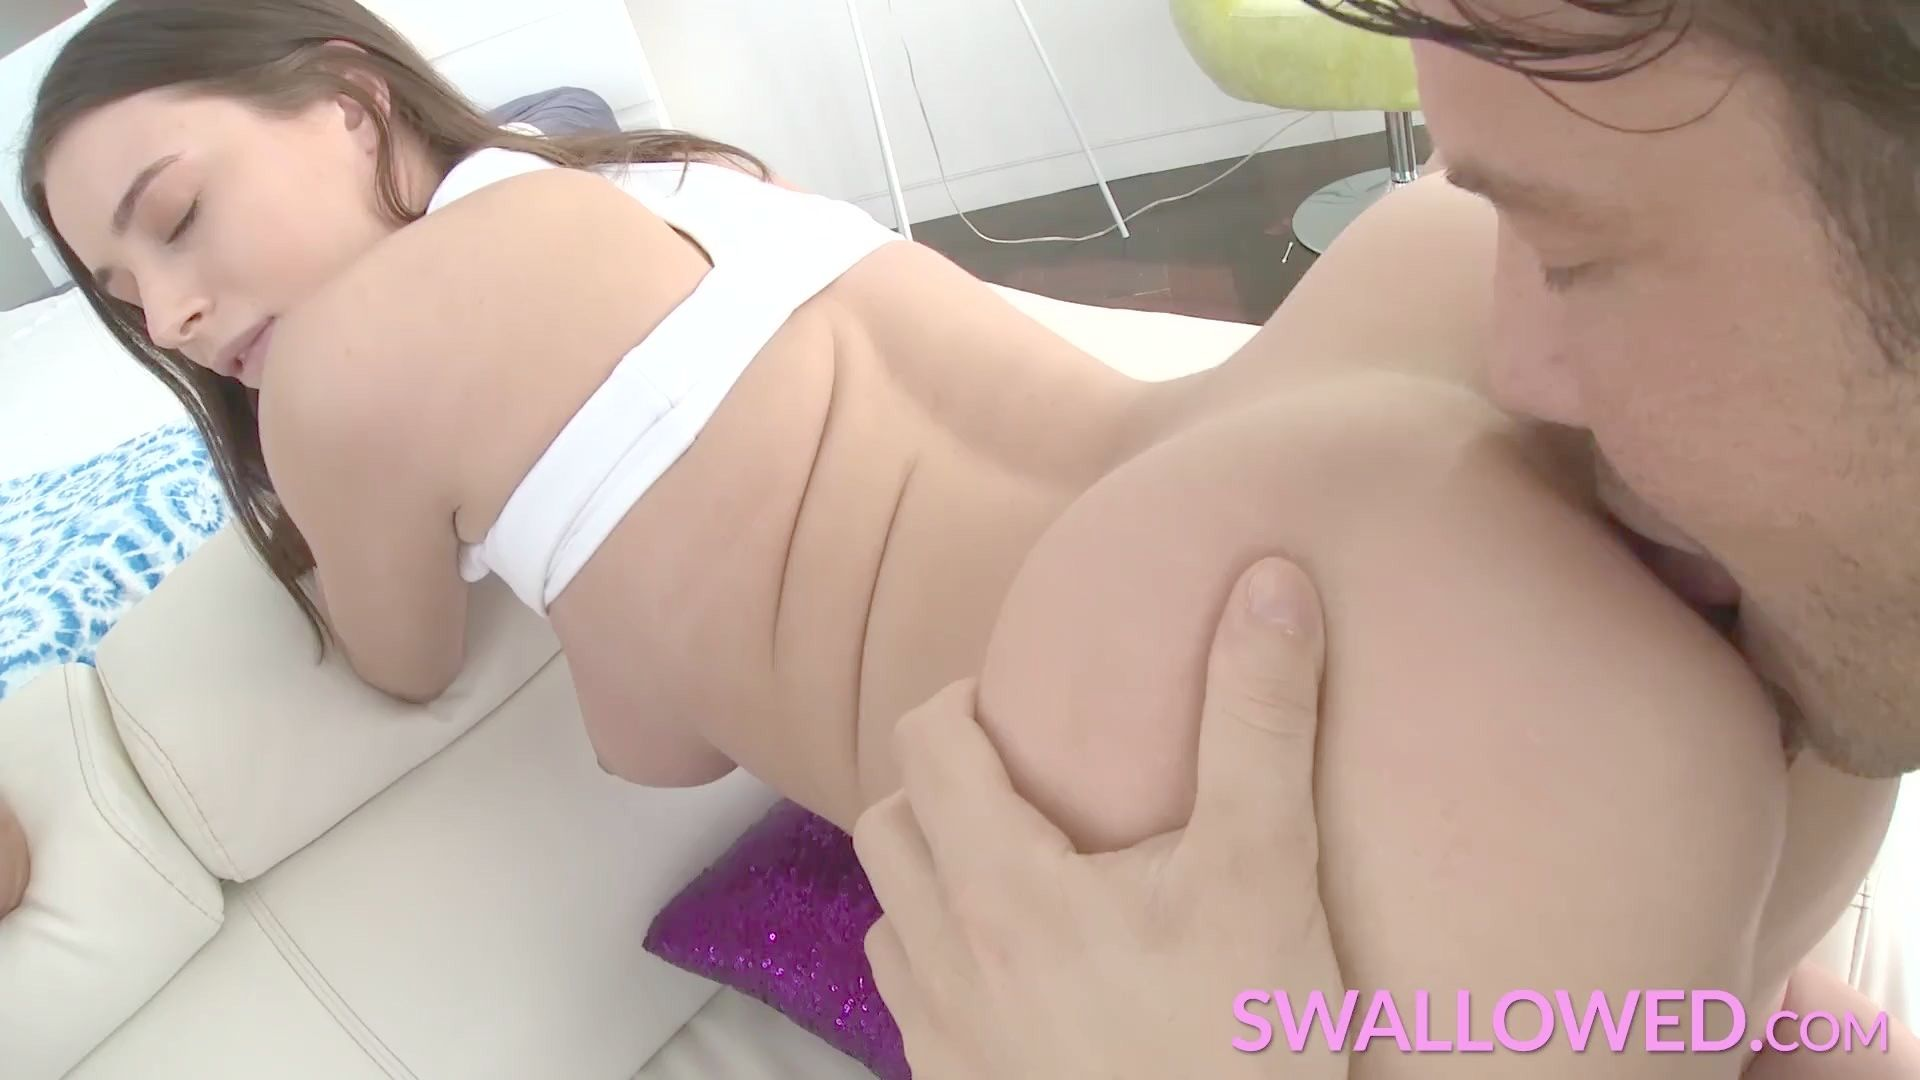 horse and girl porn long time video